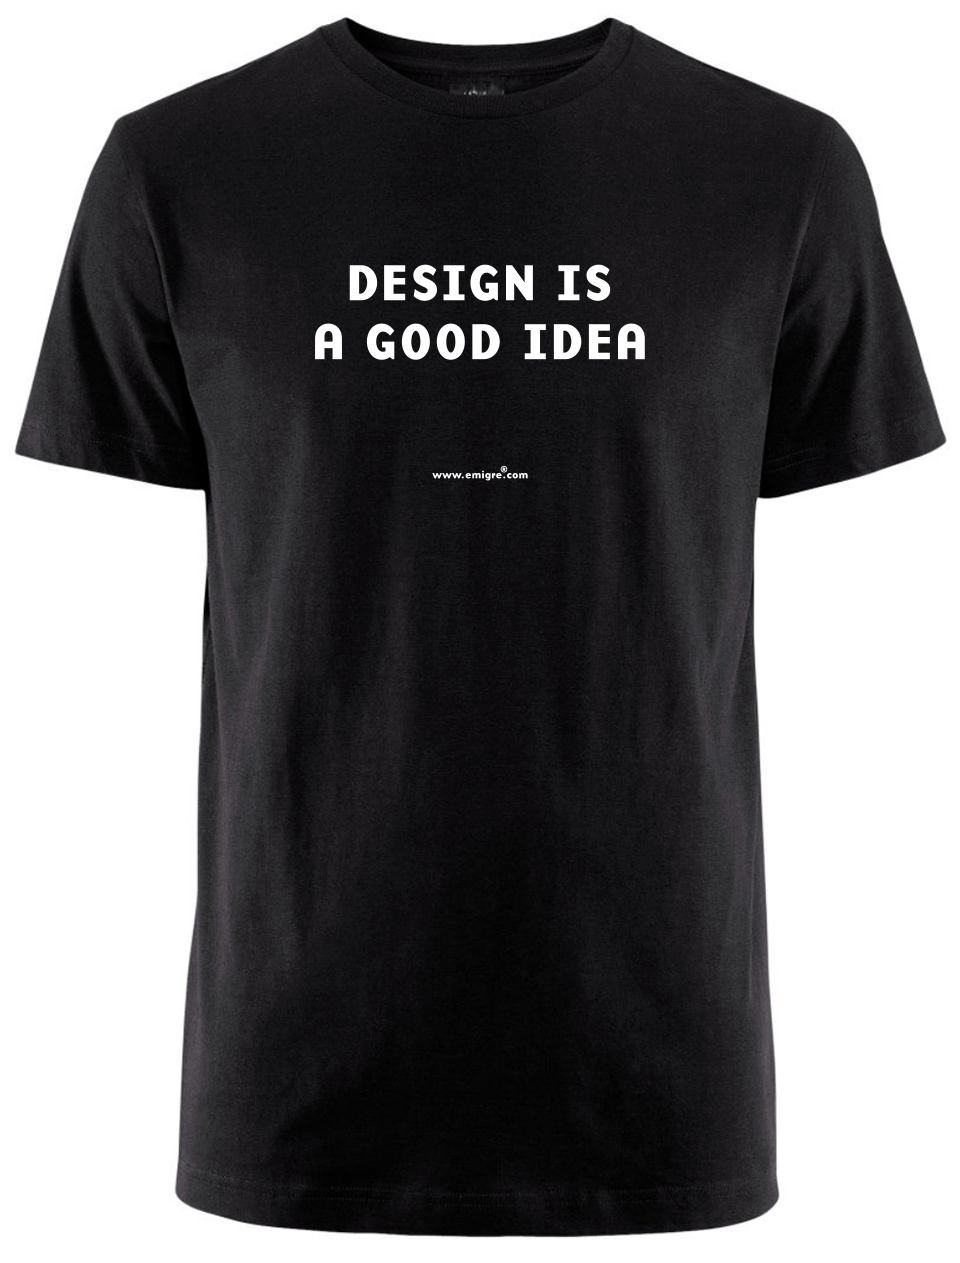 Design is a Good Idea (T-Shirt)